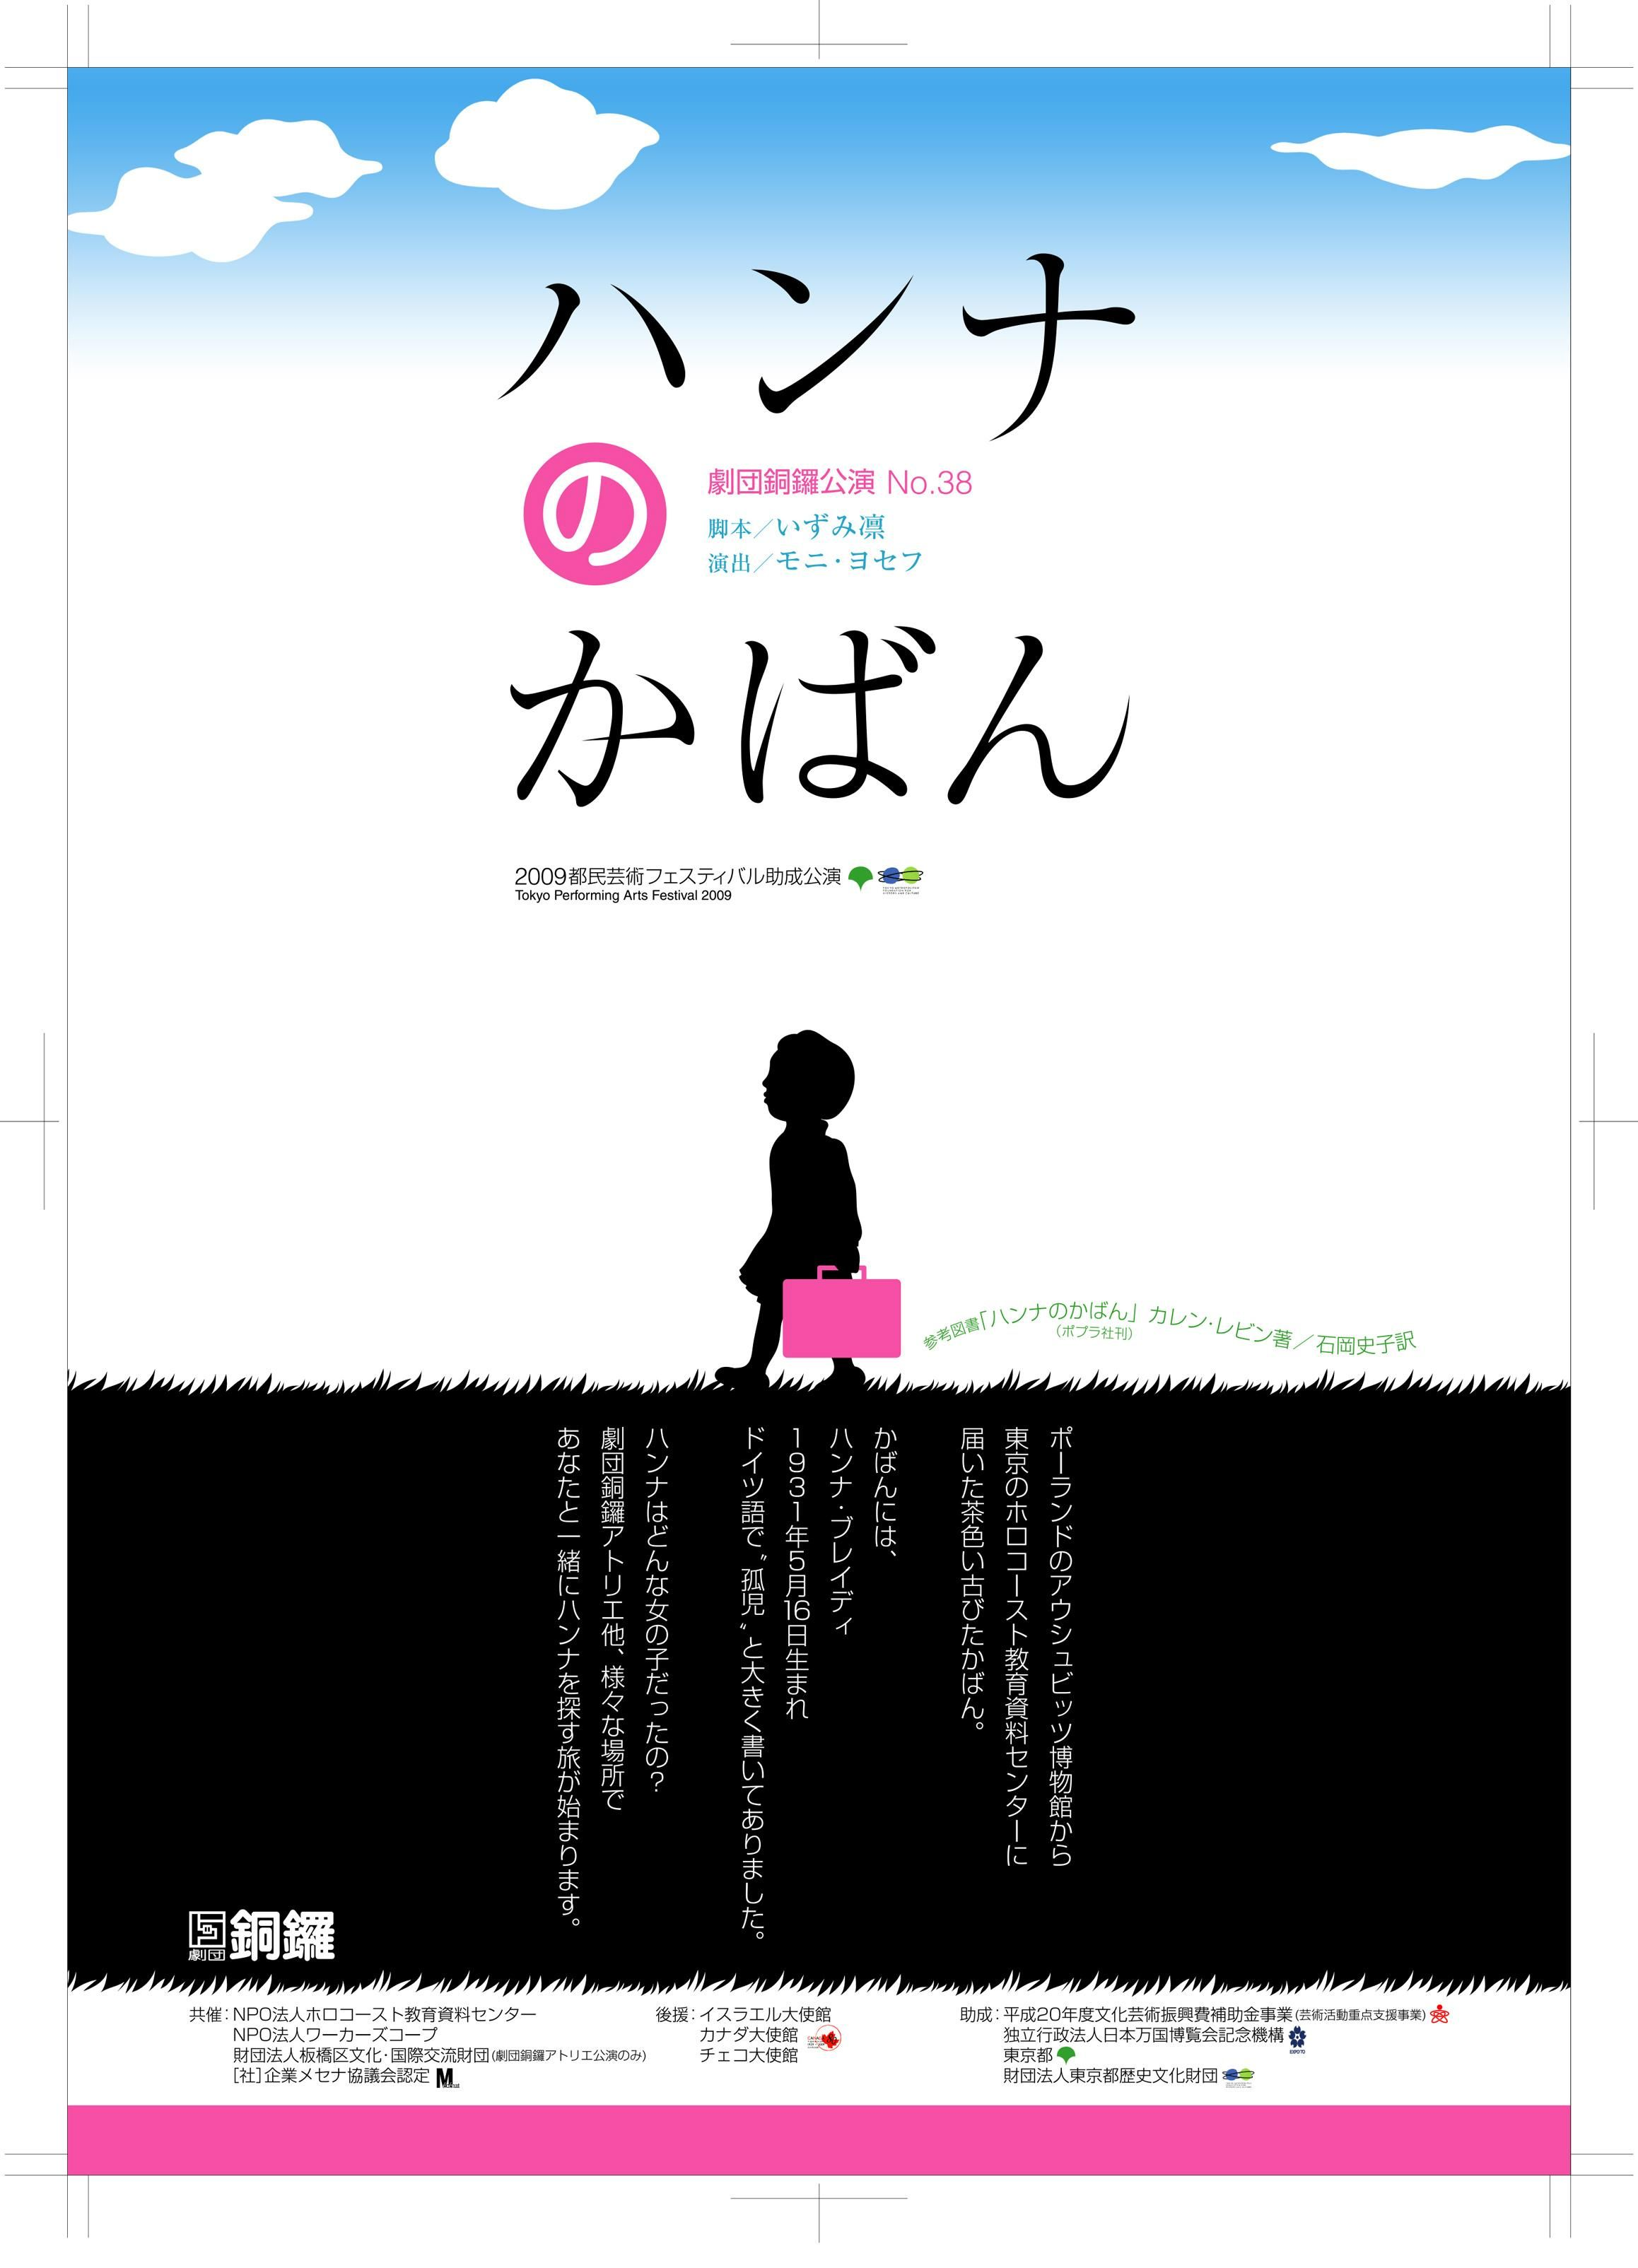 Production by Theater Dora in Tokyo. 劇団銅鑼による舞台「ハンナの ...